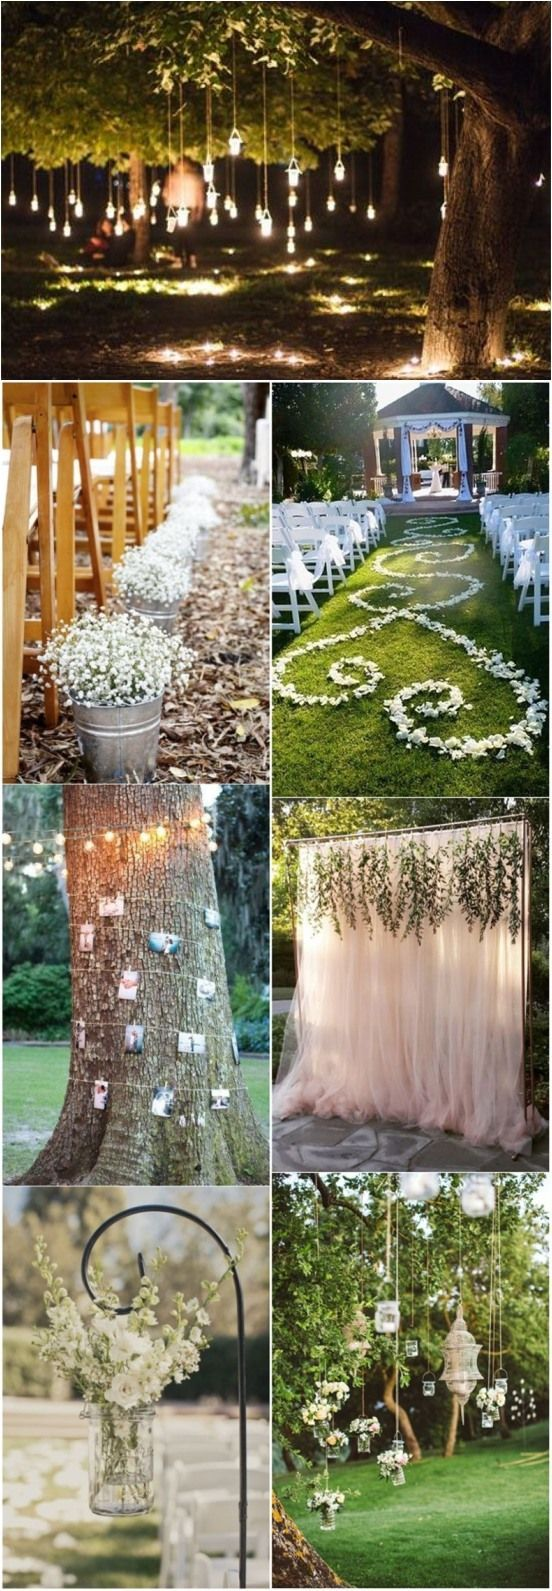 Wedding Outside Decorations Pictures : Country wedding decorations outdoor rustic ideas and weddings